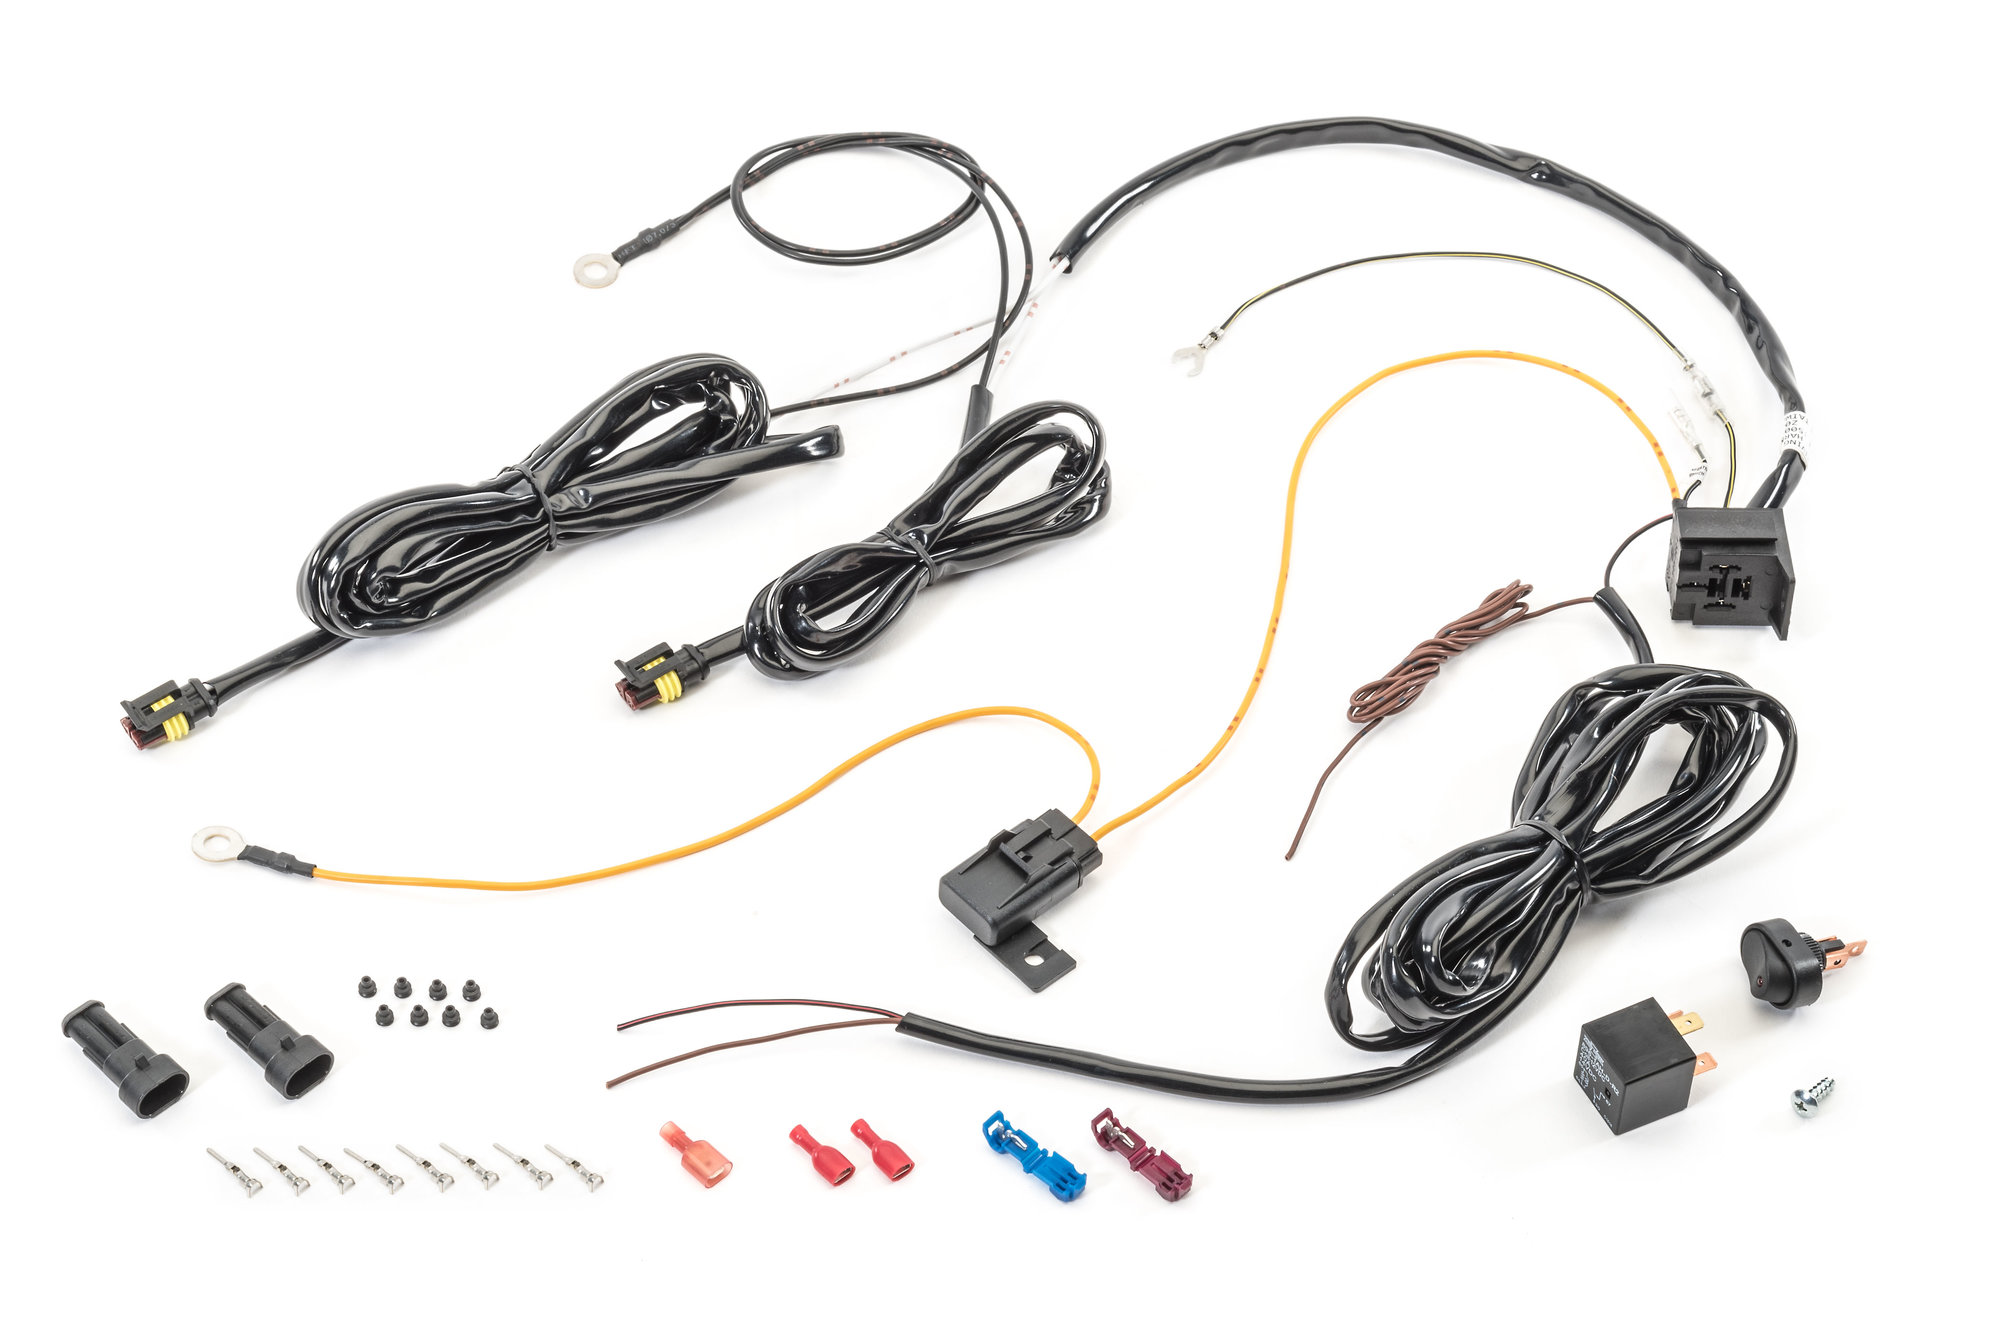 Lightforce La125 Custom Dl 12v Led Light Wiring Harness With Waterproof 4 Pin Connectors